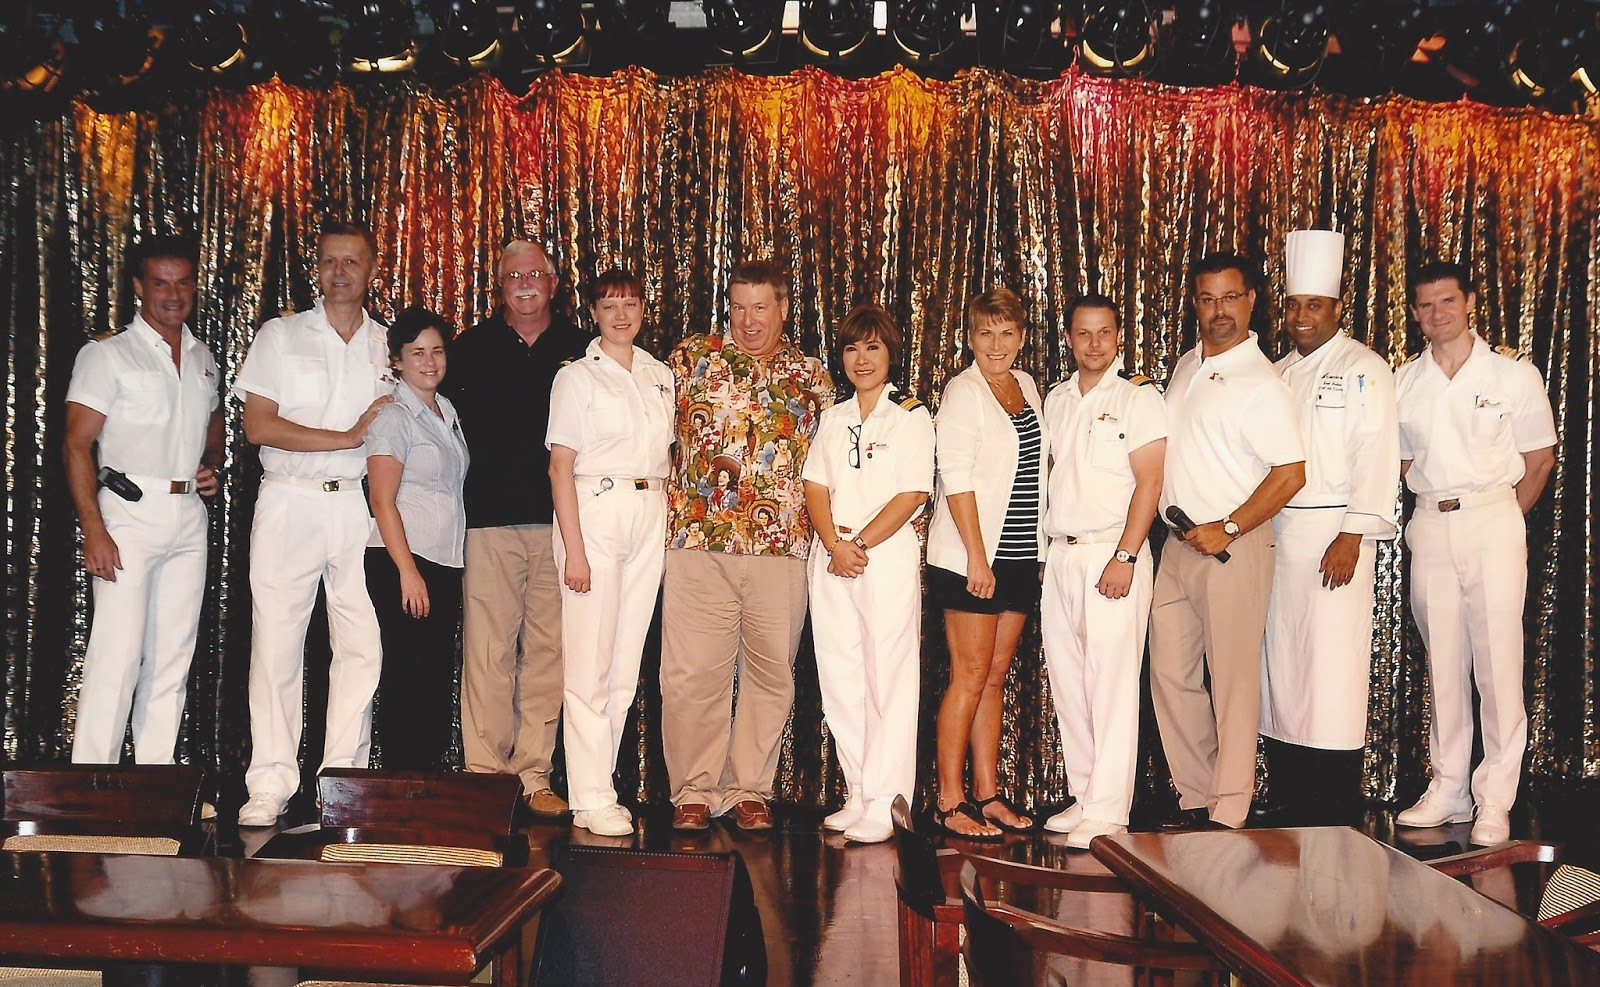 ray's cruise blog: carnival triumph cruise review